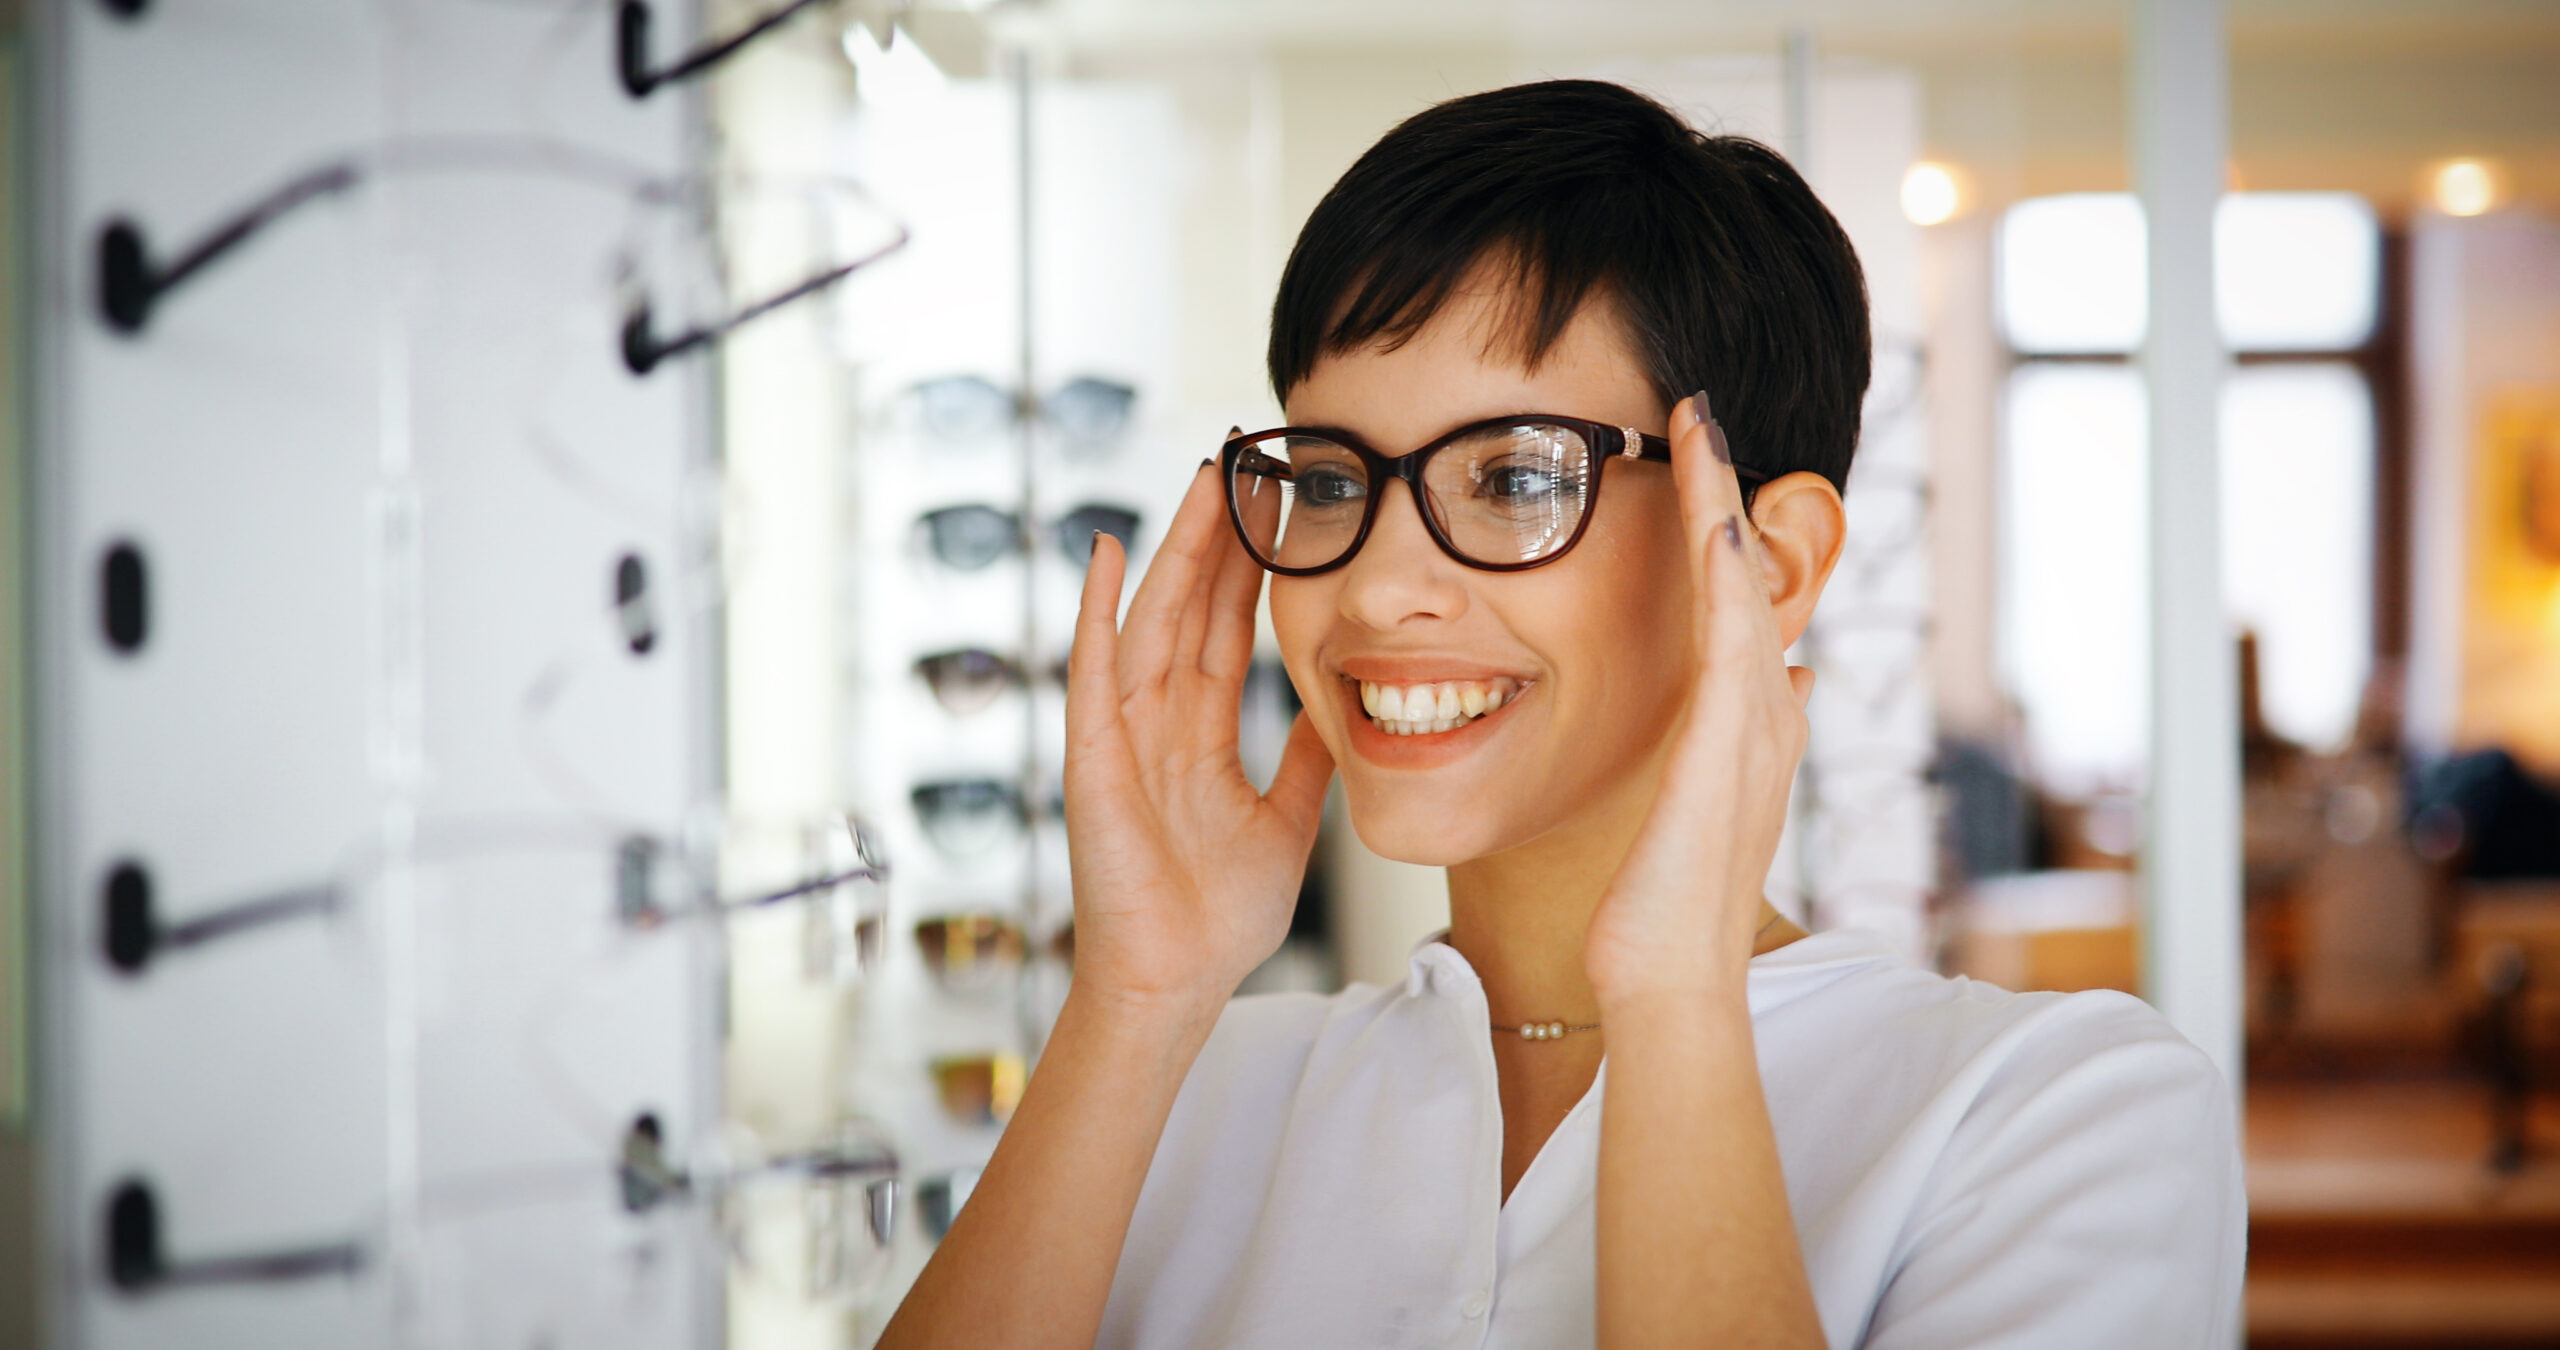 What's The Difference Between Standard Fit And Asian Fit Eyeglasses?What's The Difference Between Standard Fit And Asian Fit Eyeglasses?